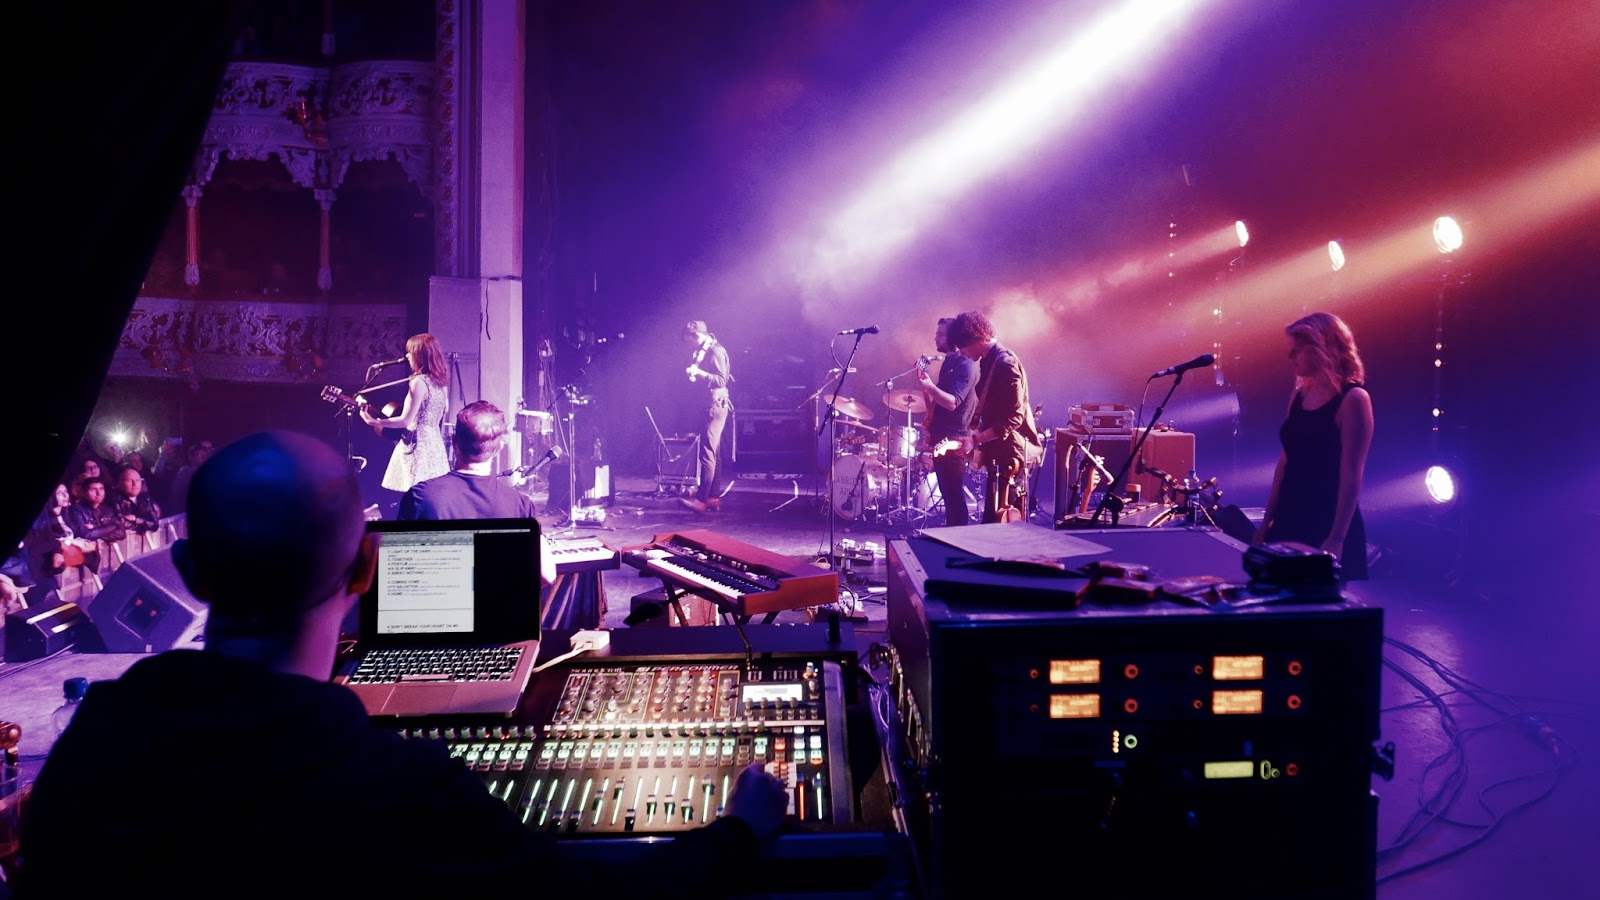 Soundcraft_Gabrielle Aplin_03.jpg